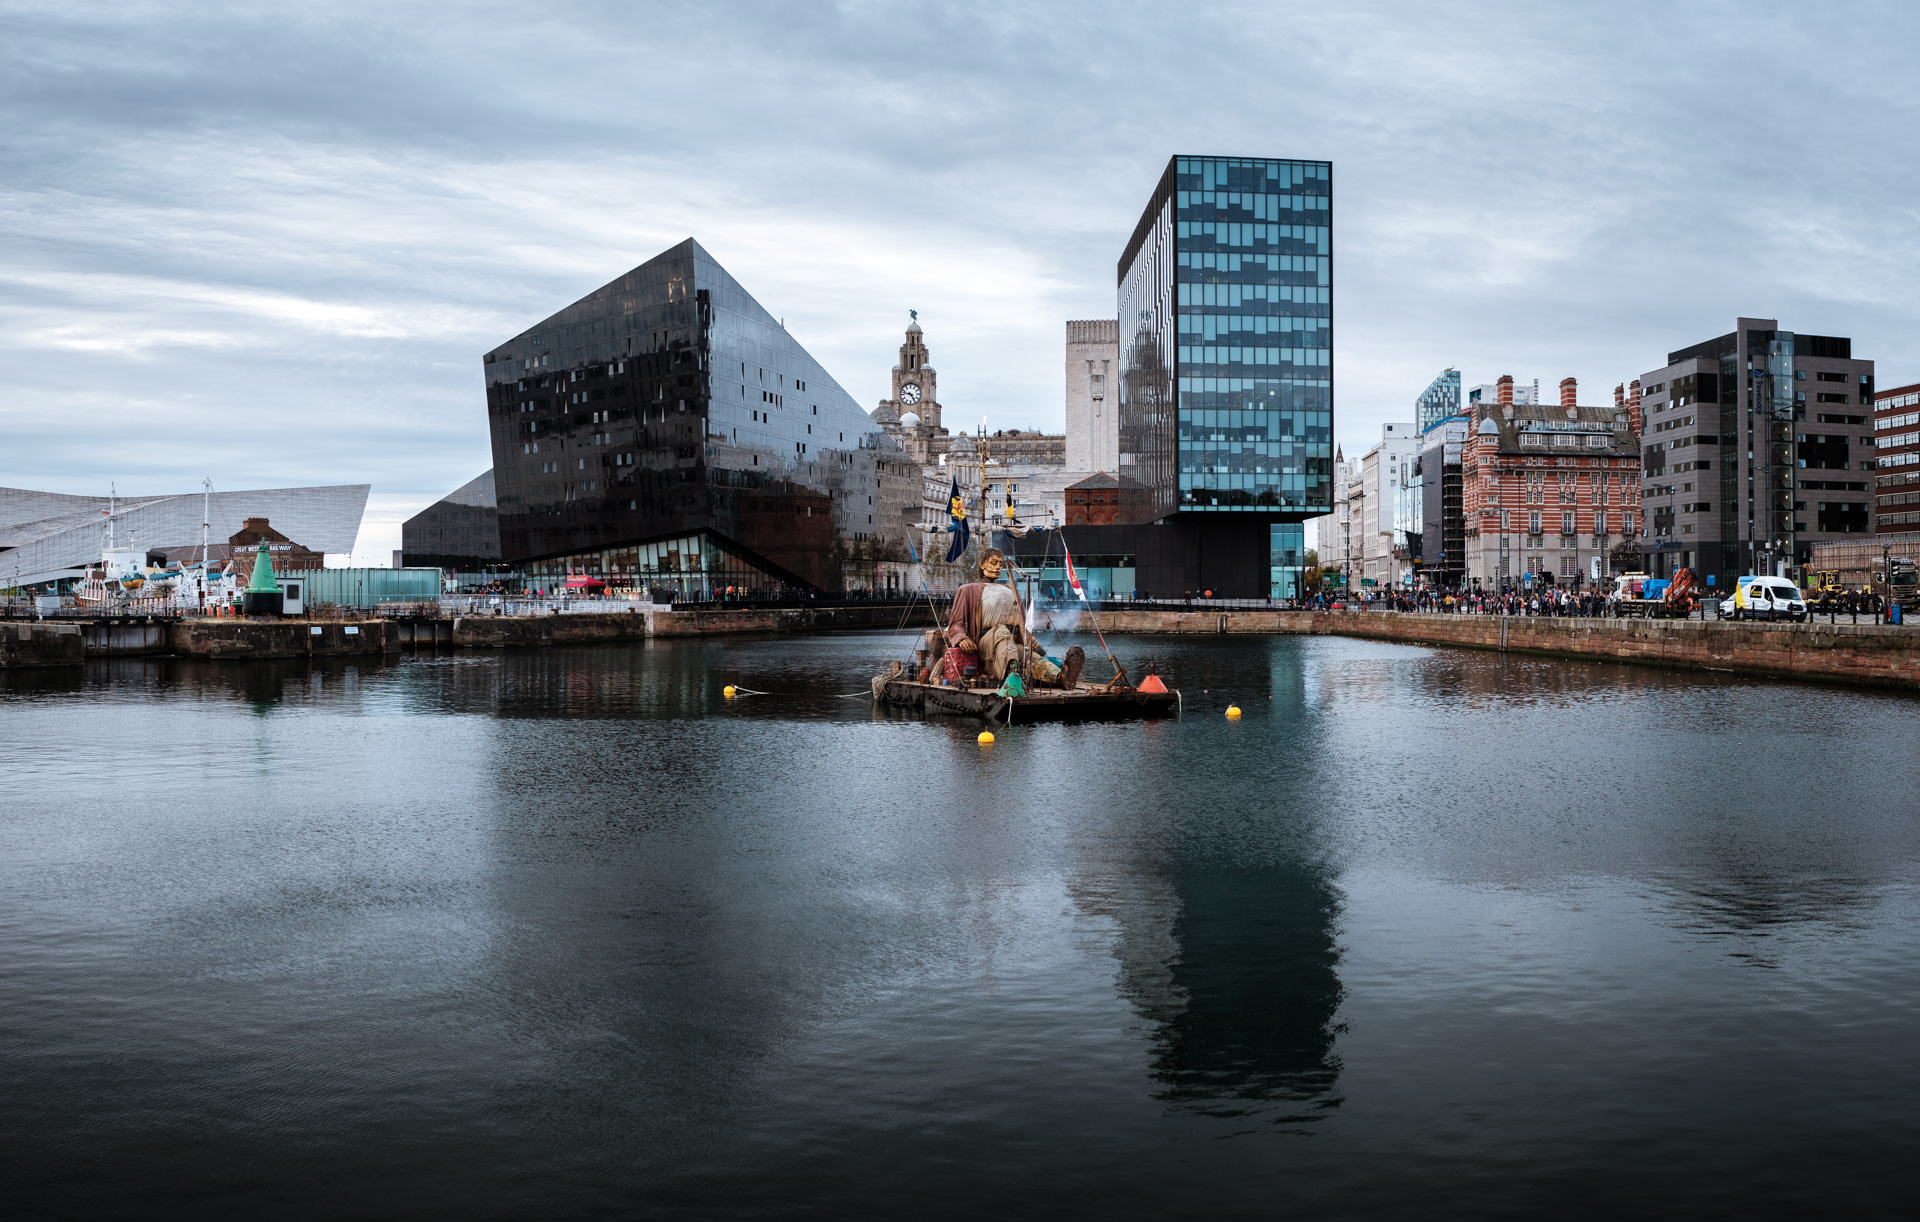 …in the Canning Dock.